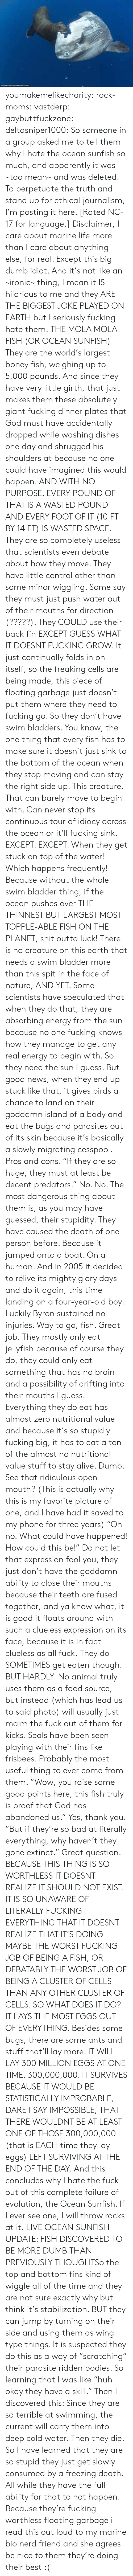 "luckily: ORihad Herrma M  S youmakemelikecharity:  rock-moms:  vastderp:  gaybuttfuckzone:  deltasniper1000:  So someone in a group asked me to tell them why I hate the ocean sunfish so much, and apparently it was ~too mean~ and was deleted. To perpetuate the truth and stand up for ethical journalism, I'm posting it here. [Rated NC-17 for language.]  Disclaimer, I care about marine life more than I care about anything else, for real. Except this big dumb idiot. And it's not like an ~ironic~ thing, I mean it IS hilarious to me and they ARE THE BIGGEST JOKE PLAYED ON EARTH but I seriously fucking hate them.  THE MOLA MOLA FISH (OR OCEAN SUNFISH)  They are the world's largest boney fish, weighing up to 5,000 pounds. And since they have very little girth, that just makes them these absolutely giant fucking dinner plates that God must have accidentally dropped while washing dishes one day and shrugged his shoulders at because no one could have imagined this would happen. AND WITH NO PURPOSE. EVERY POUND OF THAT IS A WASTED POUND AND EVERY FOOT OF IT (10 FT BY 14 FT) IS WASTED SPACE.  They are so completely useless that scientists even debate about how they move. They have little control other than some minor wiggling. Some say they must just push water out of their mouths for direction (?????). They COULD use their back fin EXCEPT GUESS WHAT IT DOESNT FUCKING GROW. It just continually folds in on itself, so the freaking cells are being made, this piece of floating garbage just doesn't put them where they need to fucking go.   So they don't have swim bladders. You know, the one thing that every fish has to make sure it doesn't just sink to the bottom of the ocean when they stop moving and can stay the right side up. This creature. That can barely move to begin with. Can never stop its continuous tour of idiocy across the ocean or it'll fucking sink. EXCEPT. EXCEPT. When they get stuck on top of the water! Which happens frequently! Because without the whole swim bladder thing, if the ocean pushes over THE THINNEST BUT LARGEST MOST TOPPLE-ABLE FISH ON THE PLANET, shit outta luck! There is no creature on this earth that needs a swim bladder more than this spit in the face of nature, AND YET. Some scientists have speculated that when they do that, they are absorbing energy from the sun because no one fucking knows how they manage to get any real energy to begin with. So they need the sun I guess. But good news, when they end up stuck like that, it gives birds a chance to land on their goddamn island of a body and eat the bugs and parasites out of its skin because it's basically a slowly migrating cesspool. Pros and cons.   ""If they are so huge, they must at least be decent predators."" No. No. The most dangerous thing about them is, as you may have guessed, their stupidity. They have caused the death of one person before. Because it jumped onto a boat. On a human. And in 2005 it decided to relive its mighty glory days and do it again, this time landing on a four-year-old boy. Luckily Byron sustained no injuries. Way to go, fish. Great job.  They mostly only eat jellyfish because of course they do, they could only eat something that has no brain and a possibility of drifting into their mouths I guess. Everything they do eat has almost zero nutritional value and because it's so stupidly fucking big, it has to eat a ton of the almost no nutritional value stuff to stay alive. Dumb. See that ridiculous open mouth? (This is actually why this is my favorite picture of one, and I have had it saved to my phone for three years) ""Oh no! What could have happened! How could this be!"" Do not let that expression fool you, they just don't have the goddamn ability to close their mouths because their teeth are fused together, and ya know what, it is good it floats around with such a clueless expression on its face, because it is in fact clueless as all fuck.  They do SOMETIMES get eaten though. BUT HARDLY. No animal truly uses them as a food source, but instead (which has lead us to said photo) will usually just maim the fuck out of them for kicks. Seals have been seen playing with their fins like frisbees. Probably the most useful thing to ever come from them.   ""Wow, you raise some good points here, this fish truly is proof that God has abandoned us."" Yes, thank you. ""But if they're so bad at literally everything, why haven't they gone extinct."" Great question.   BECAUSE THIS THING IS SO WORTHLESS IT DOESNT REALIZE IT SHOULD NOT EXIST. IT IS SO UNAWARE OF LITERALLY FUCKING EVERYTHING THAT IT DOESNT REALIZE THAT IT'S DOING MAYBE THE WORST FUCKING JOB OF BEING A FISH, OR DEBATABLY THE WORST JOB OF BEING A CLUSTER OF CELLS THAN ANY OTHER CLUSTER OF CELLS. SO WHAT DOES IT DO? IT LAYS THE MOST EGGS OUT OF EVERYTHING. Besides some bugs, there are some ants and stuff that'll lay more. IT WILL LAY 300 MILLION EGGS AT ONE TIME. 300,000,000. IT SURVIVES BECAUSE IT WOULD BE STATISTICALLY IMPROBABLE, DARE I SAY IMPOSSIBLE, THAT THERE WOULDNT BE AT LEAST ONE OF THOSE 300,000,000 (that is EACH time they lay eggs) LEFT SURVIVING AT THE END OF THE DAY.   And this concludes why I hate the fuck out of this complete failure of evolution, the Ocean Sunfish. If I ever see one, I will throw rocks at it.   LIVE OCEAN SUNFISH UPDATE: FISH DISCOVERED TO BE MORE DUMB THAN PREVIOUSLY THOUGHTSo  the top and bottom fins kind of wiggle all of the time and they are not  sure exactly why but think it's stabilization. BUT they can jump by  turning on their side and using them as  wing type things. It is suspected they do this as a way of ""scratching""  their parasite ridden bodies. So learning that I was like ""huh okay they  have a skill."" Then I discovered this: Since they  are so terrible at swimming, the current will carry them into deep cold  water. Then they die. So I have learned that they are so stupid they  just get slowly consumed by a freezing death. All while they have the  full ability for that to not happen. Because they're fucking worthless  floating garbage    i read this out loud to my marine bio nerd friend and she agrees   be nice to them they're doing their best :("